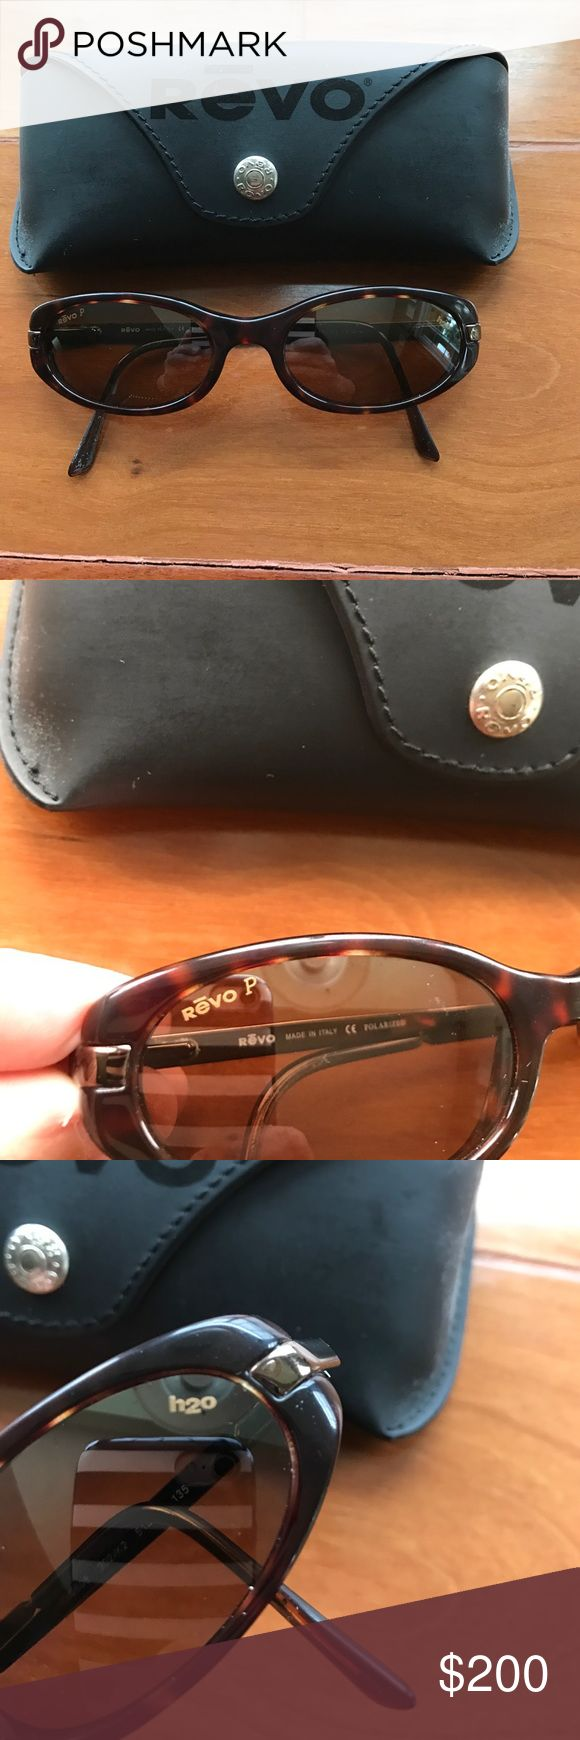 Vintage Revo polarized sunglasses. h2o technology If you are a Revo fan, you know they haven't been the same since the 90s. These are glass lenses with a brown polarized H2O lens. Tortoise frame and metal bronze arms. Not a scratch on the lenses. Pristine. Arms have spring loaded hinges. Comes with case. Revo Accessories Sunglasses